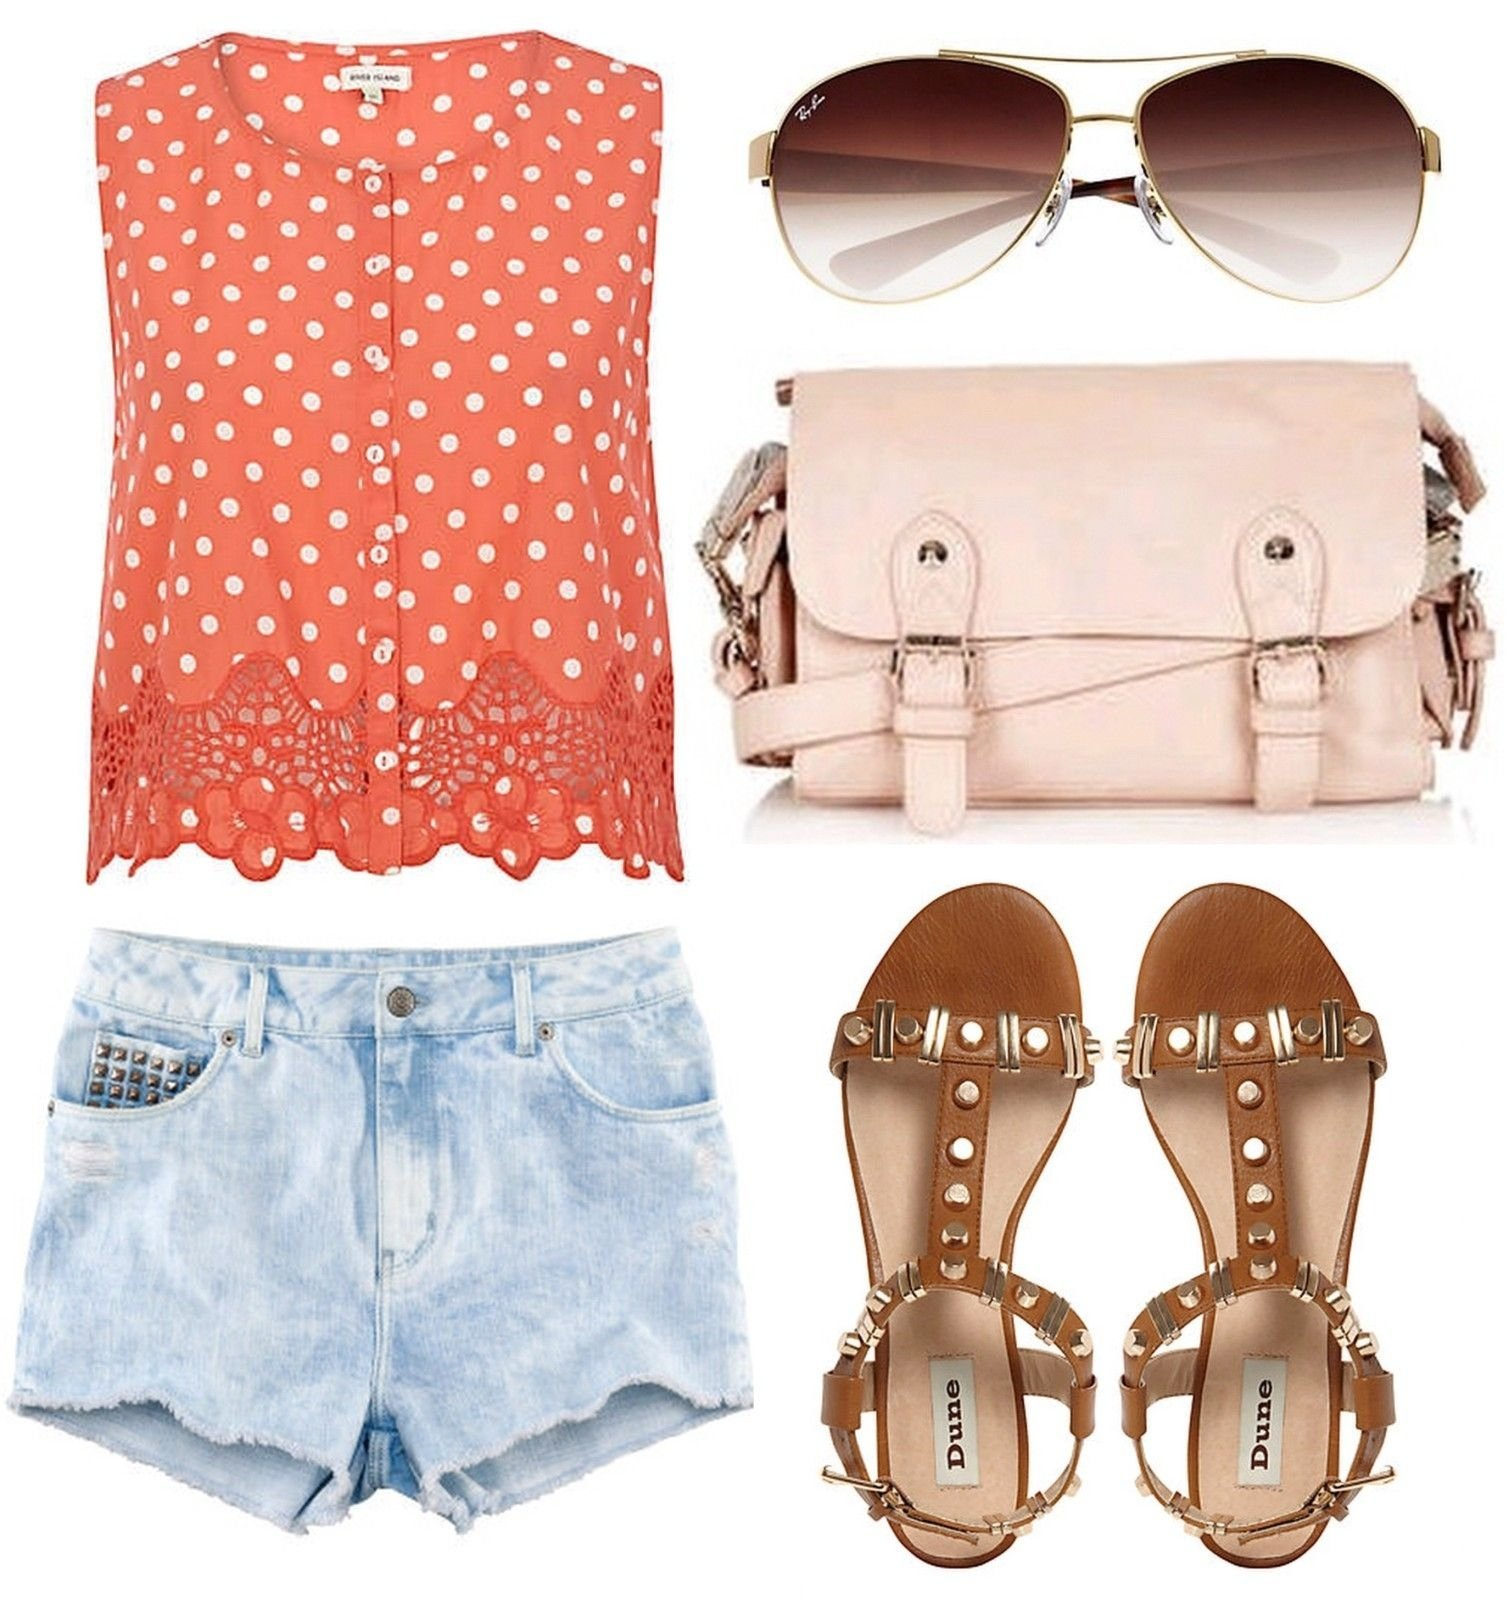 10 Cute Cute Outfit Ideas For Summer outfit ideas 028 cute outfit ideas for women teens work and 2020